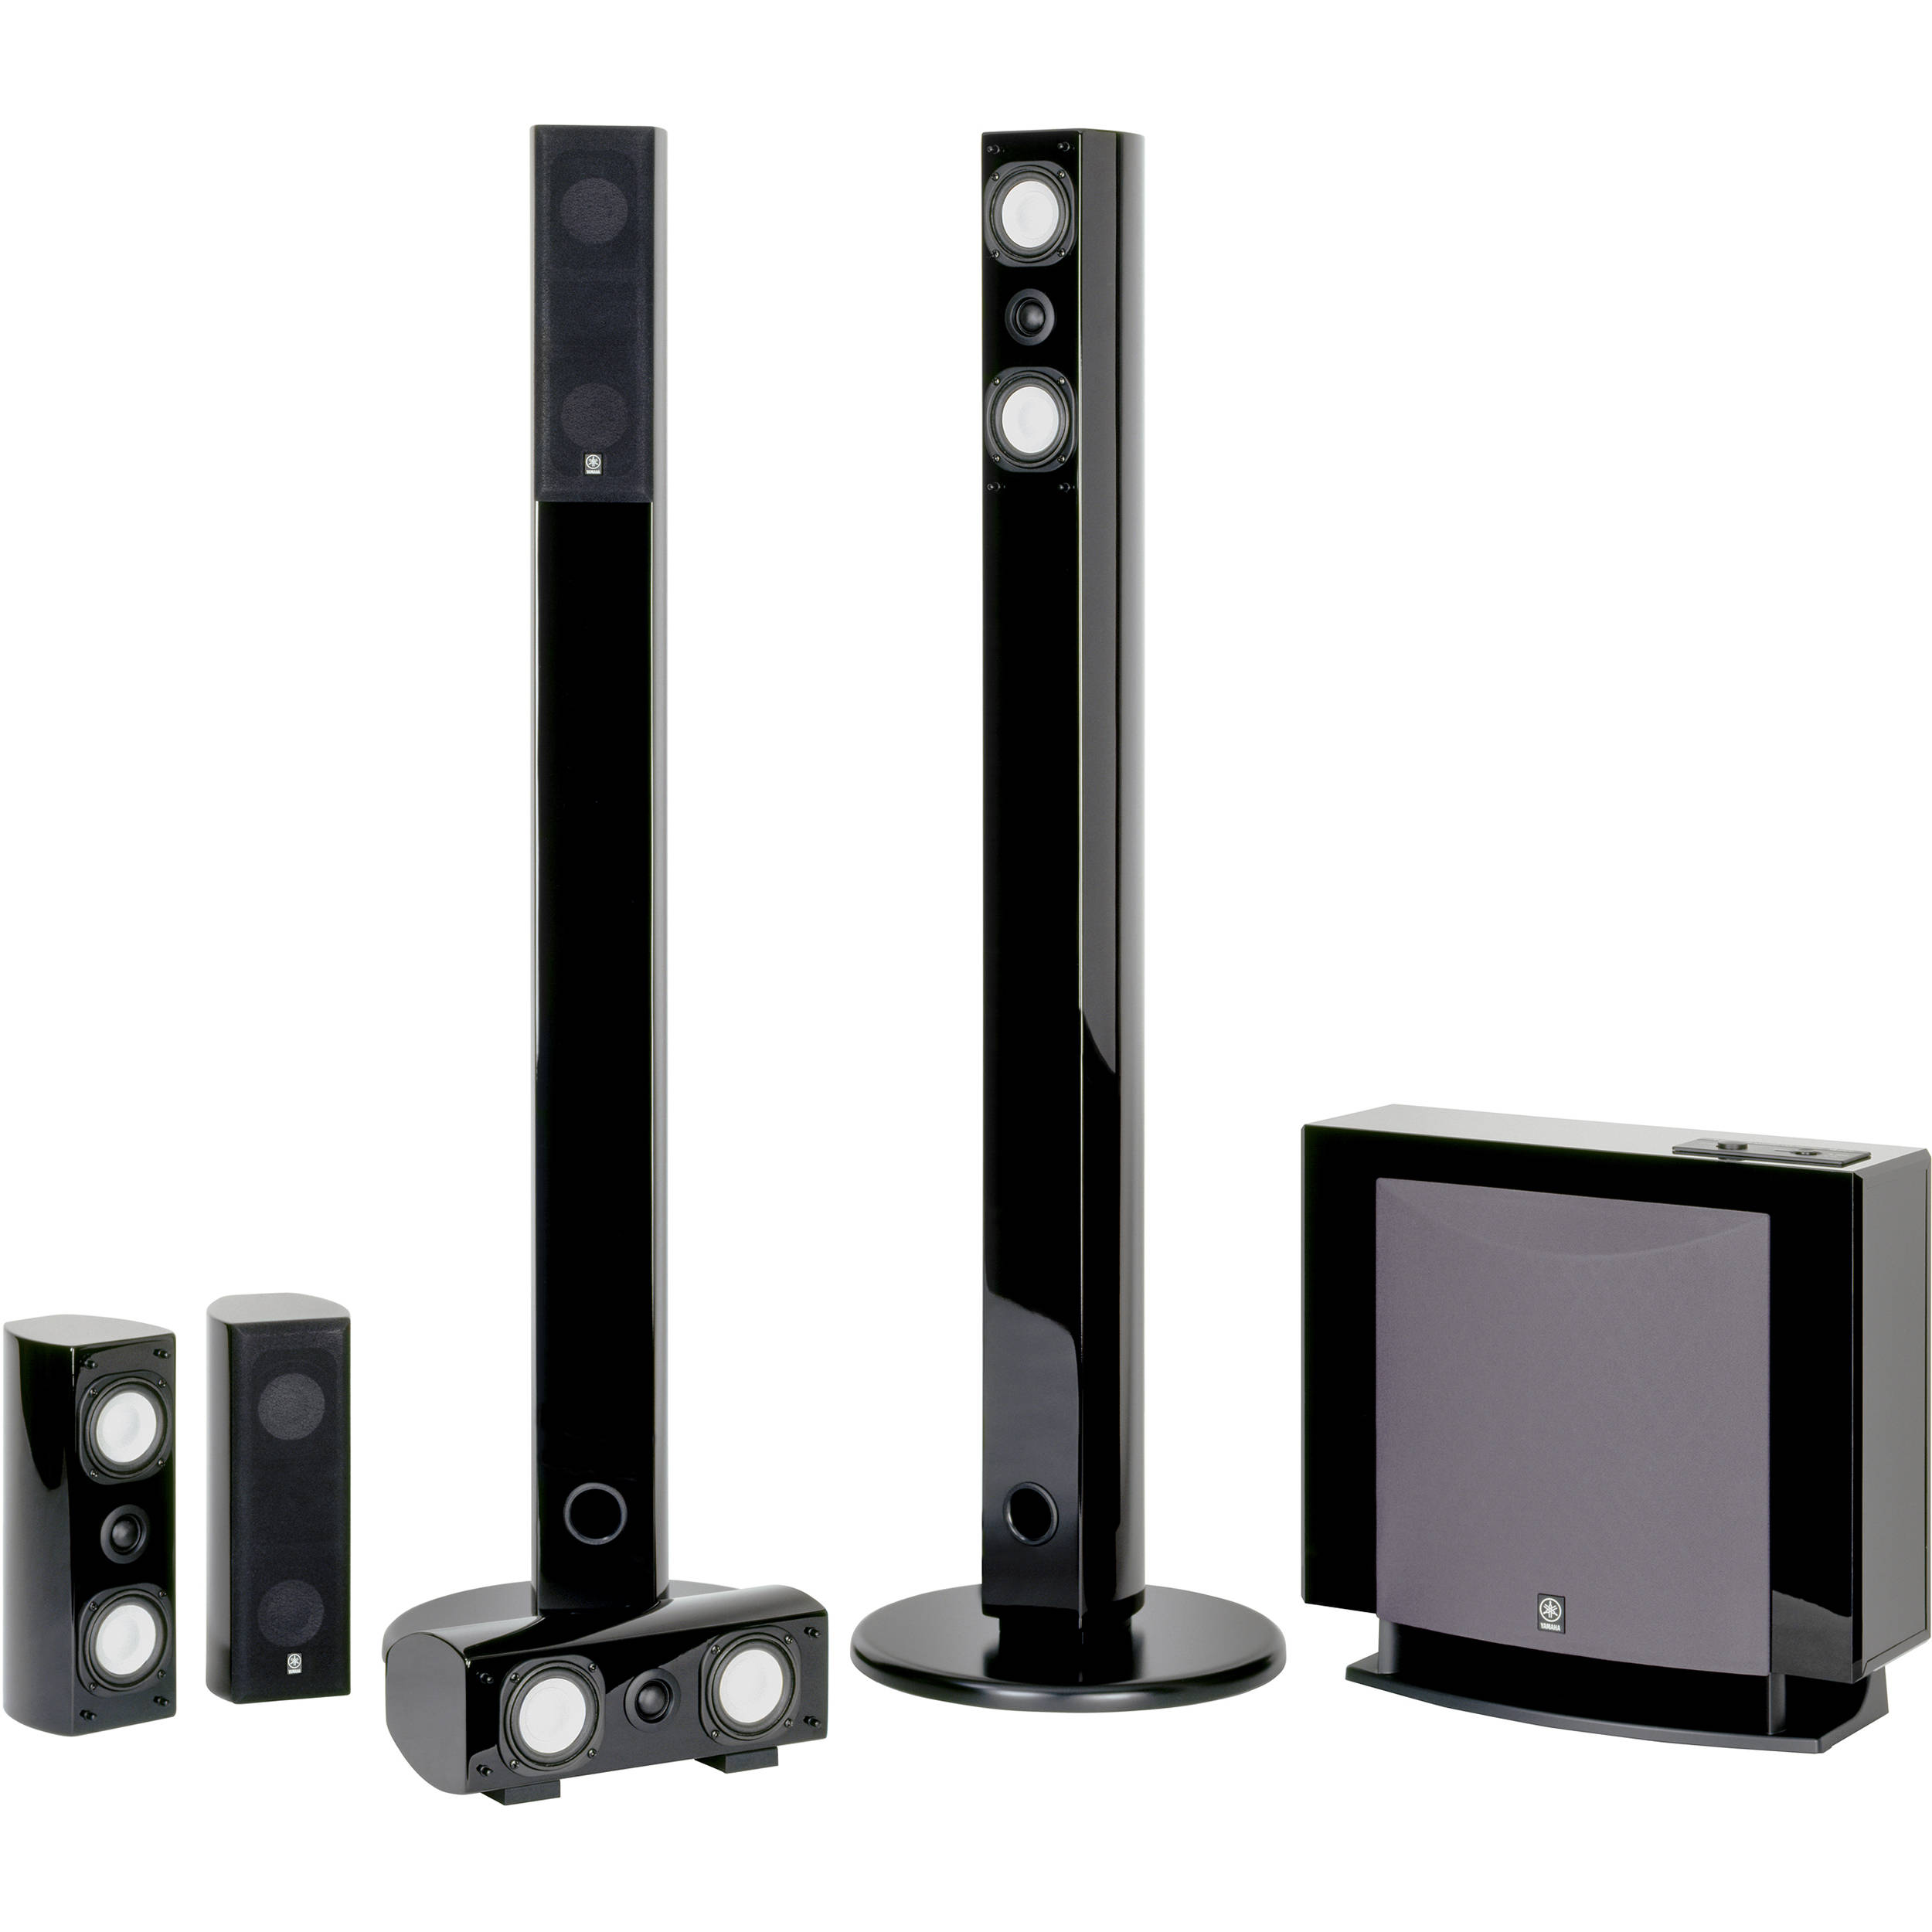 Yamaha ns sp7800pn 5 1 channel home theater speaker system black